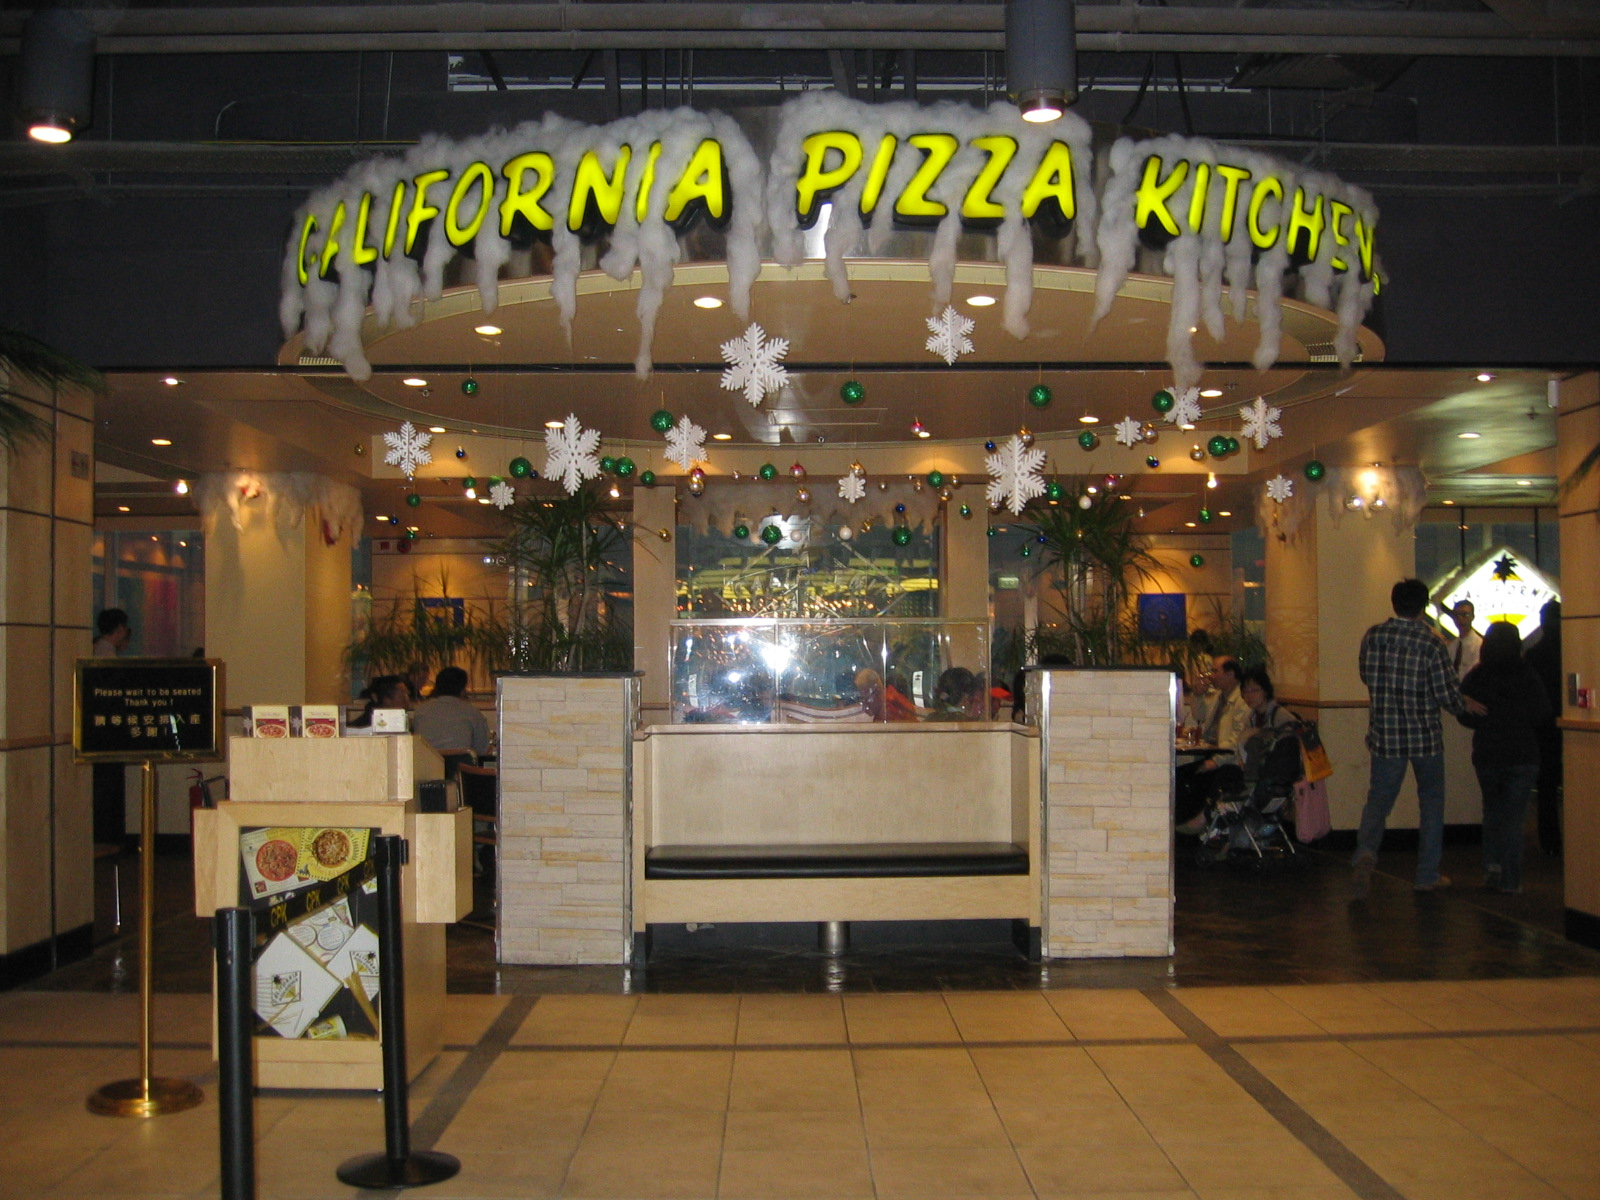 California Pizza Kitchen Philippines Facebook